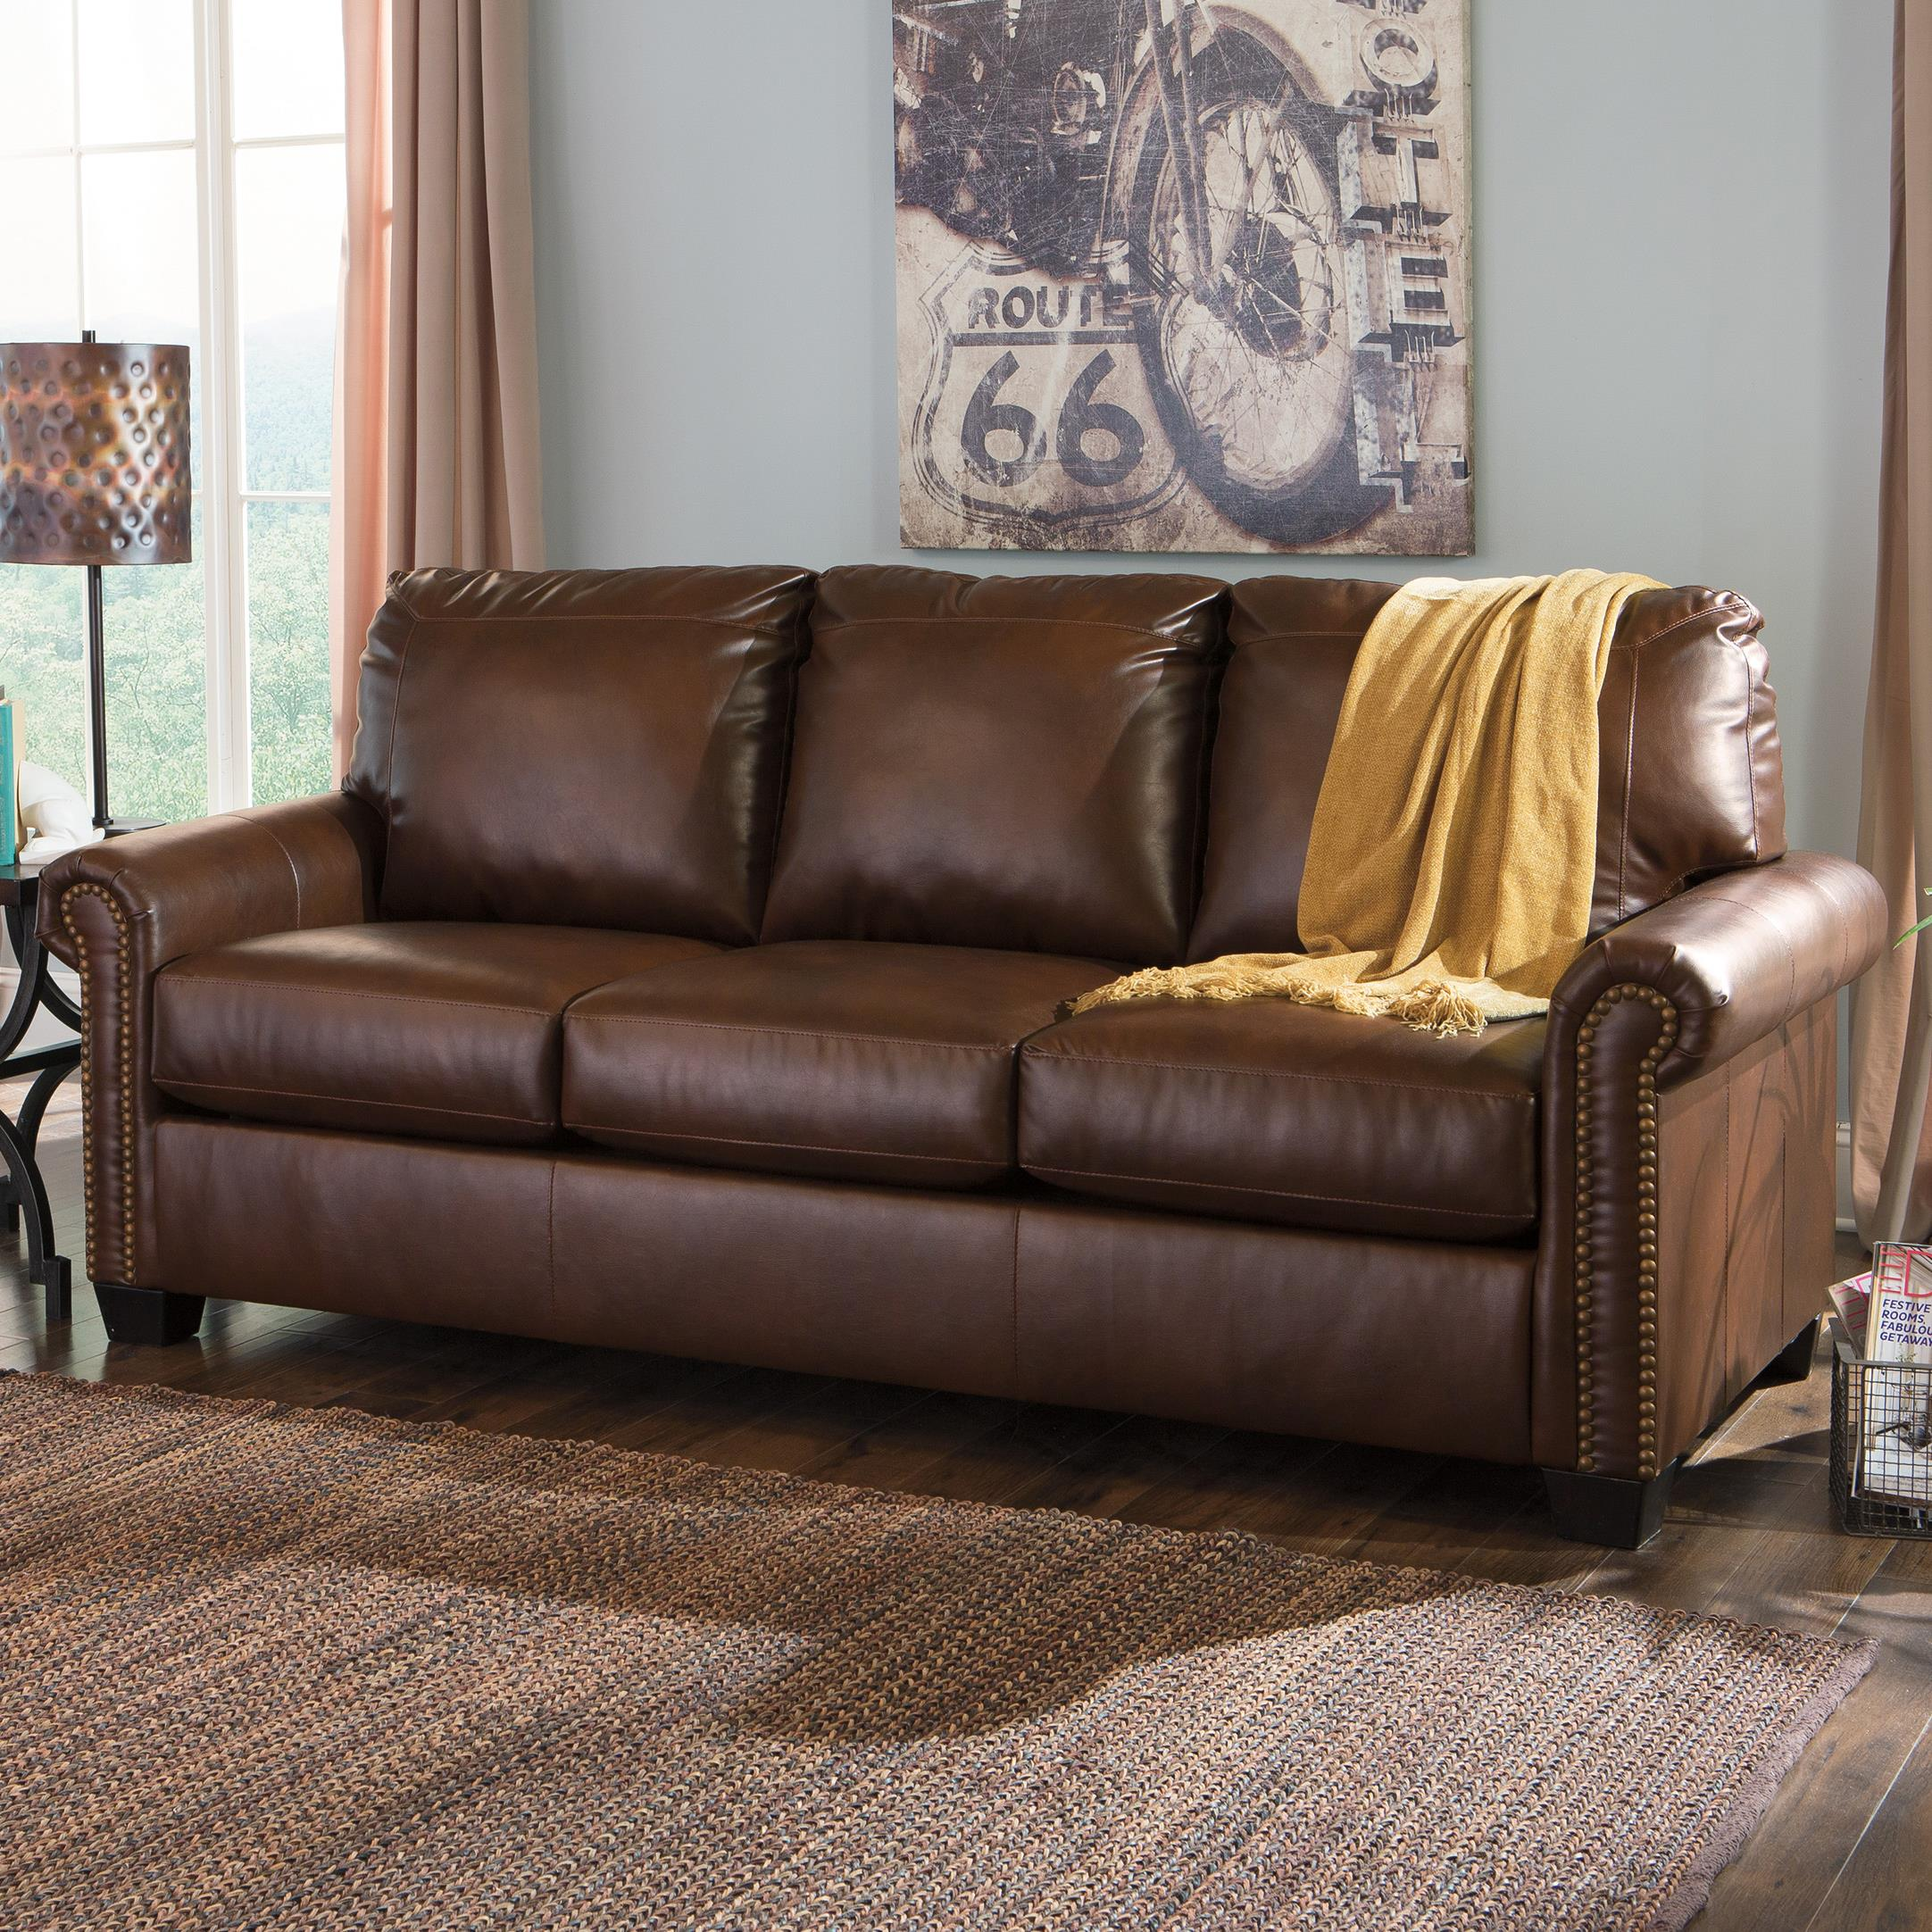 Transitional Bonded Leather Match 84 Queen Sofa Sleeper With  ~ Sofa Sleepers With Memory Foam Mattress